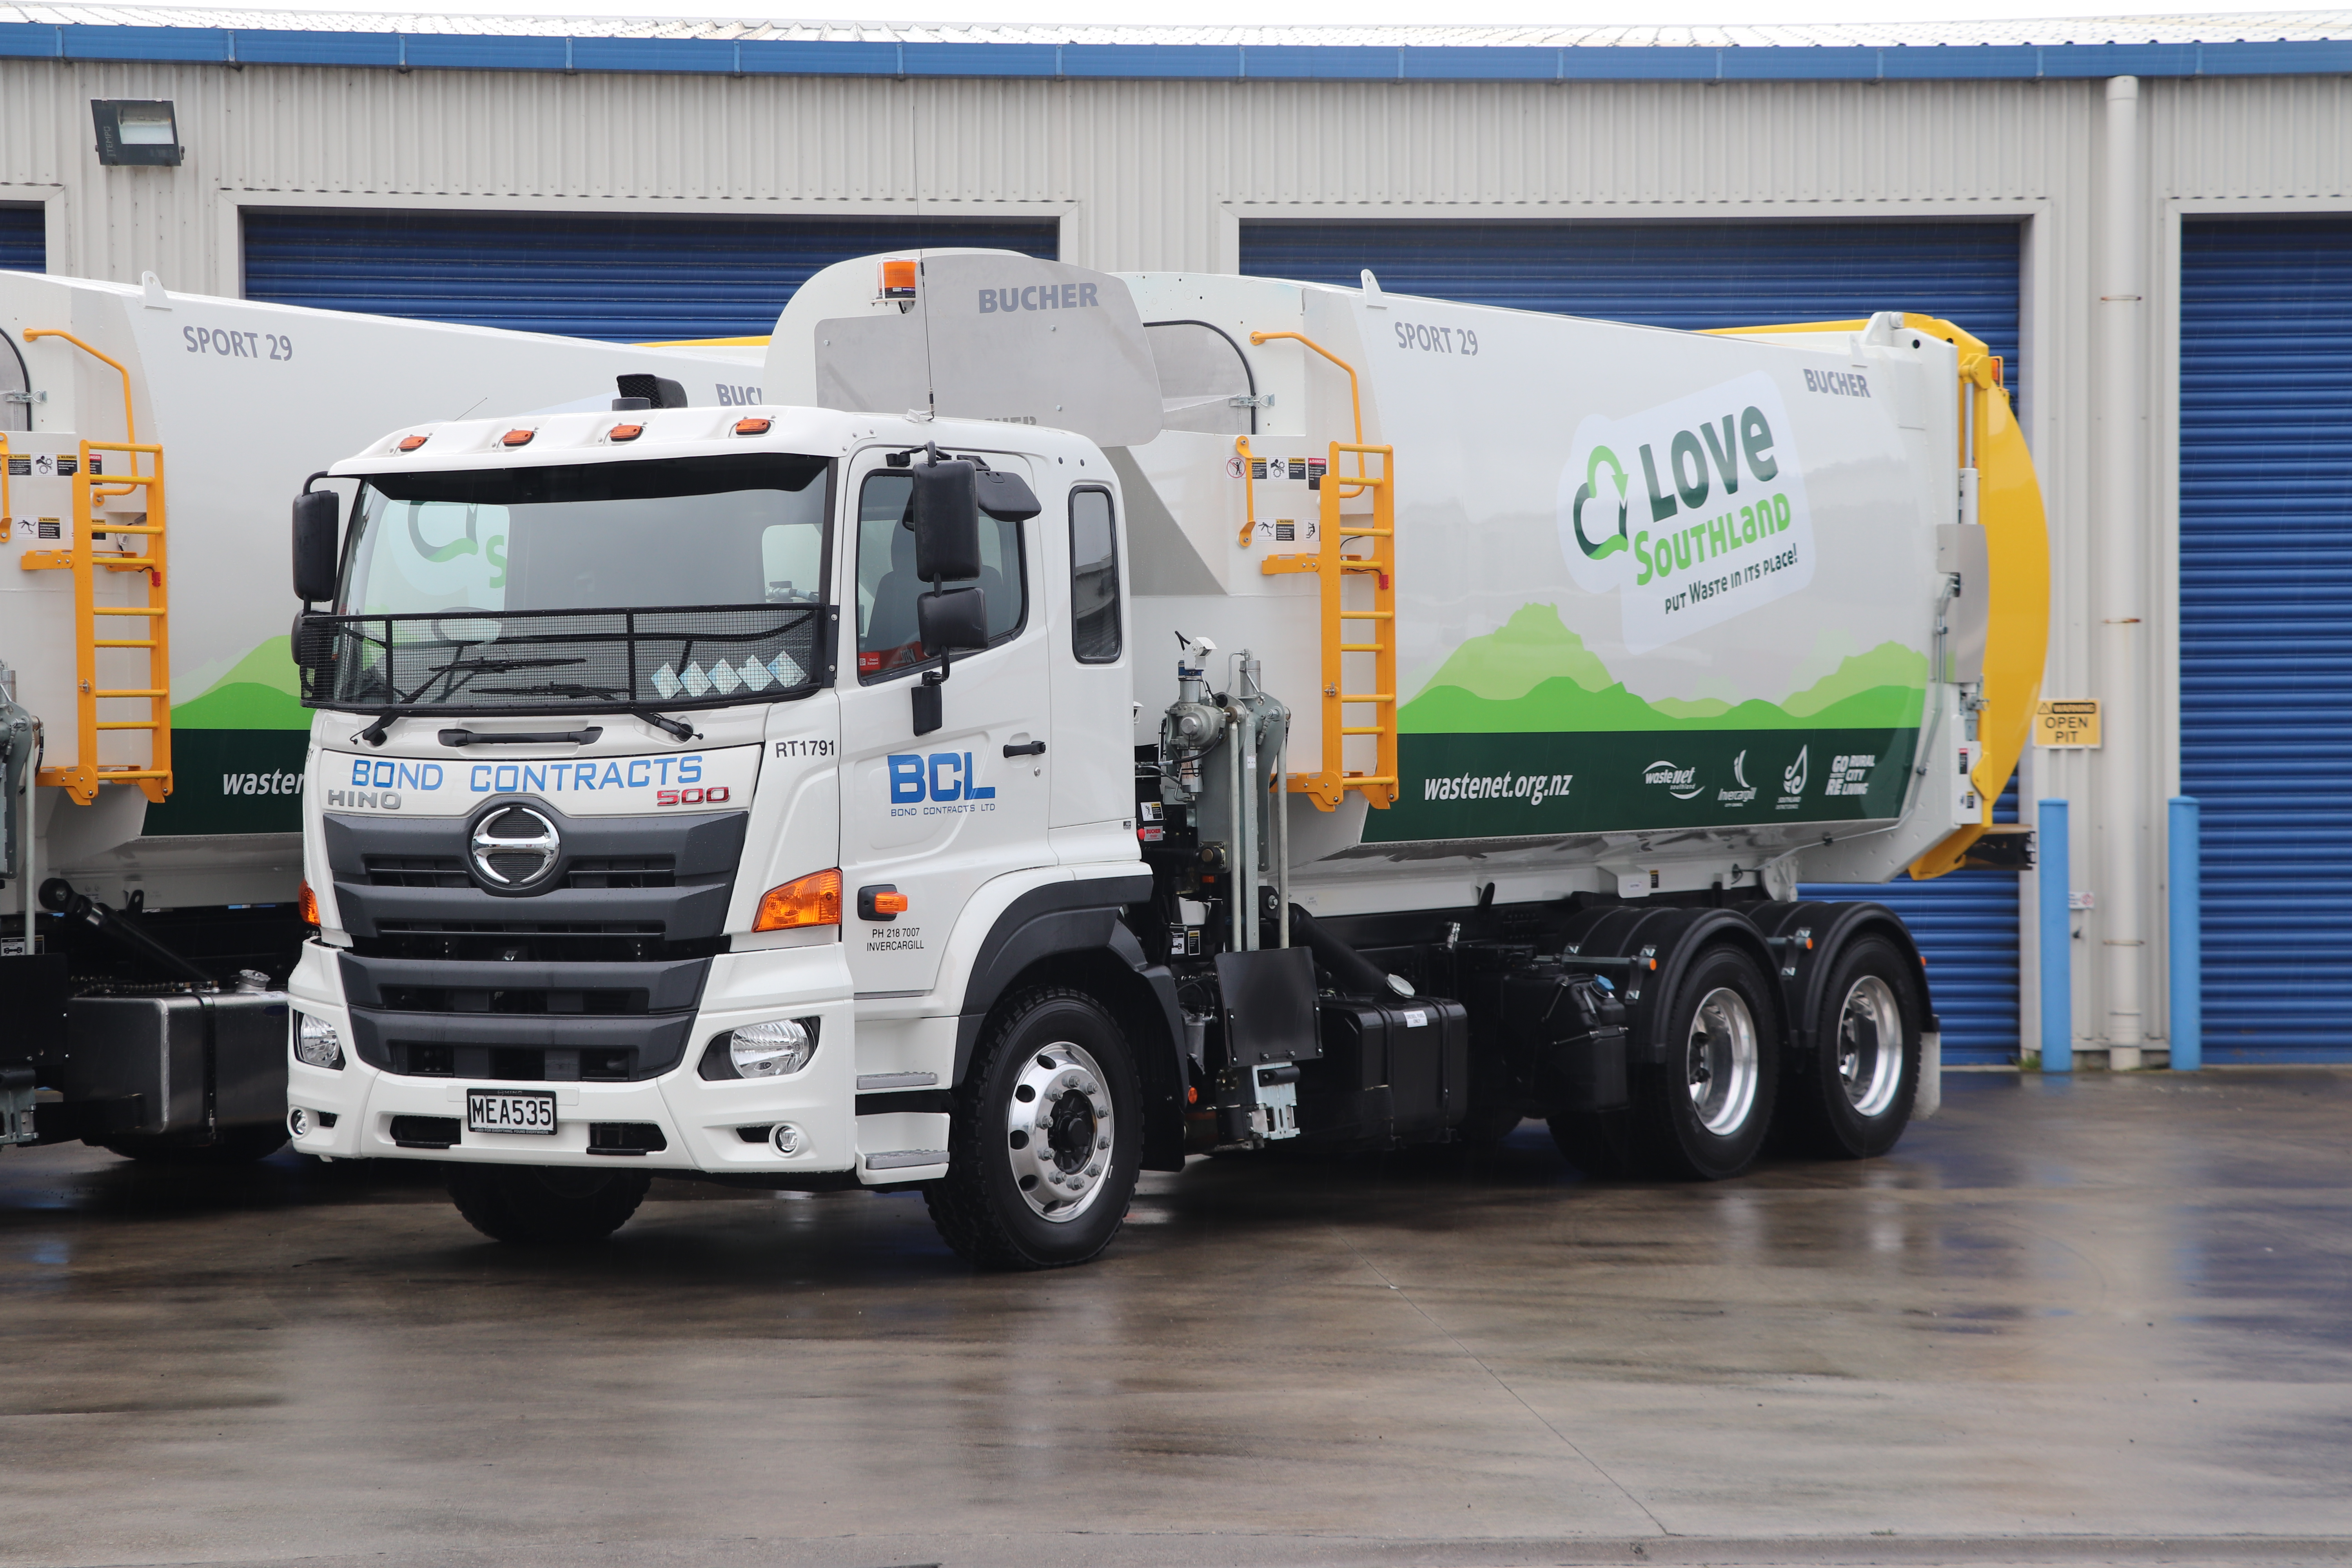 Bond Contracts Ltd - 500 Series Wide Cab - Refuse